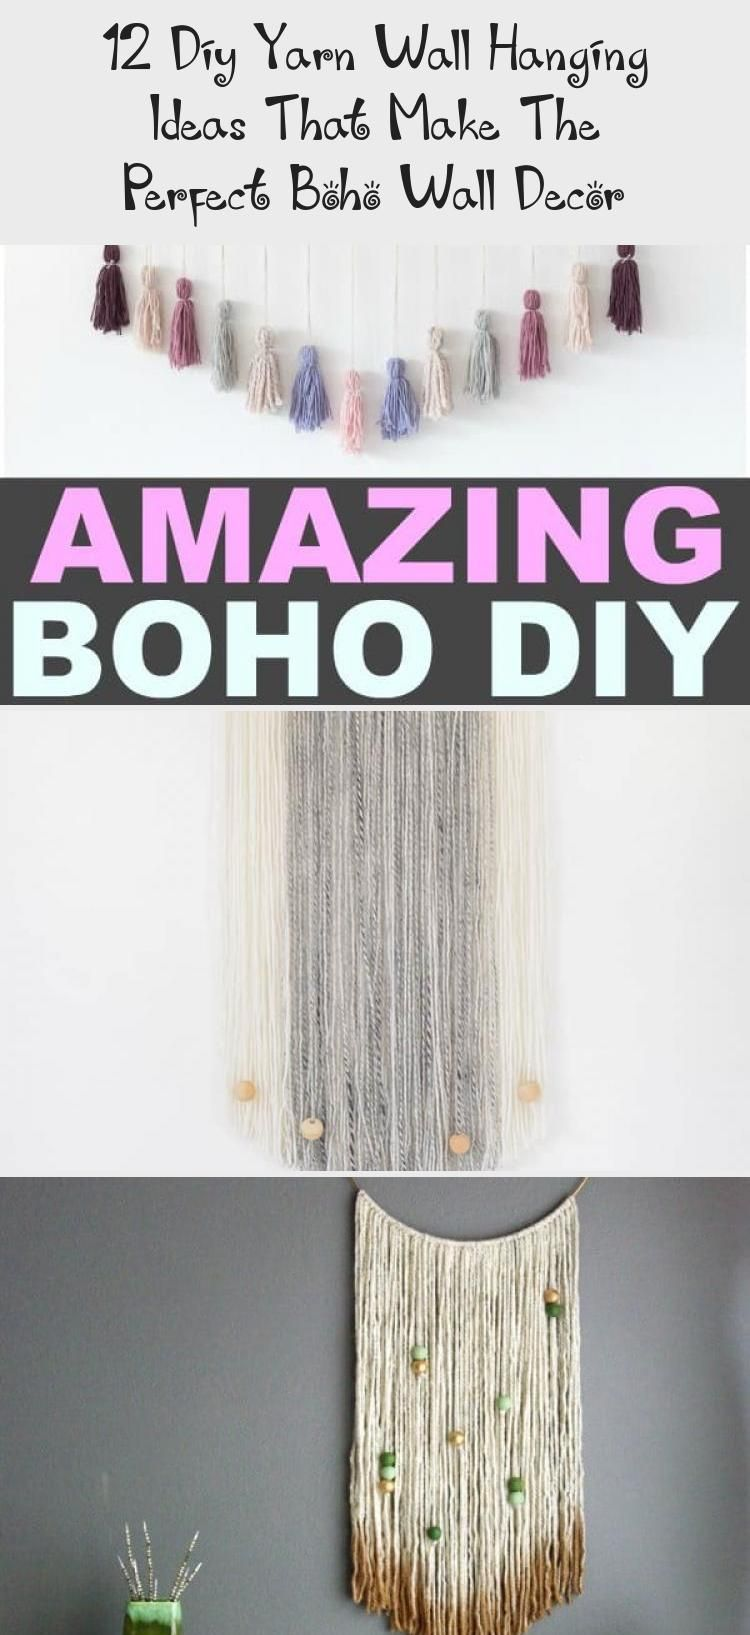 12 DIY boho yarn wall hangings that are easy yarn wall hanging ideas for beginners and make the perfect wall decor for your boho room! #wallhangings #wallart #yarns #boho #bohemian #bedroomdecor #smallspaces #diycrafts #crafts #easycrafts #bohostyle #bohodecorationStudioApartments #bohodecorationParty #bohodecorationBaskets #bohodecorationGarden #bohodecorationJungles